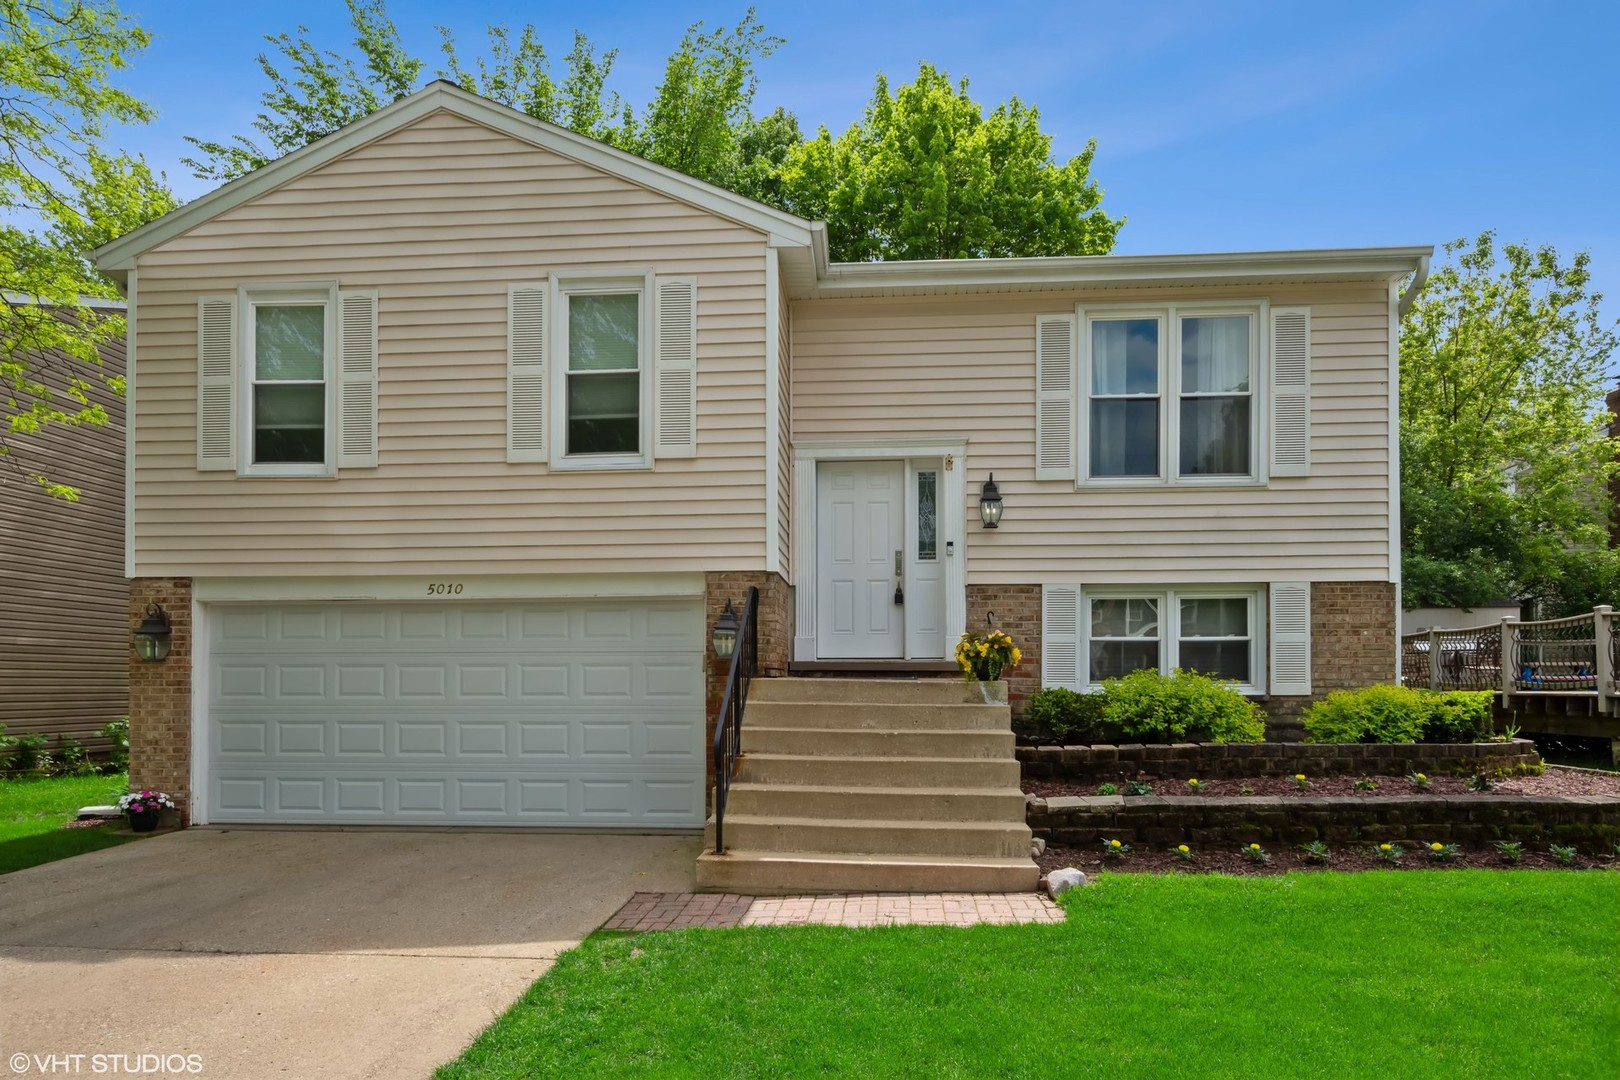 5010 Lichfield, Hoffman Estates, Illinois, 60010